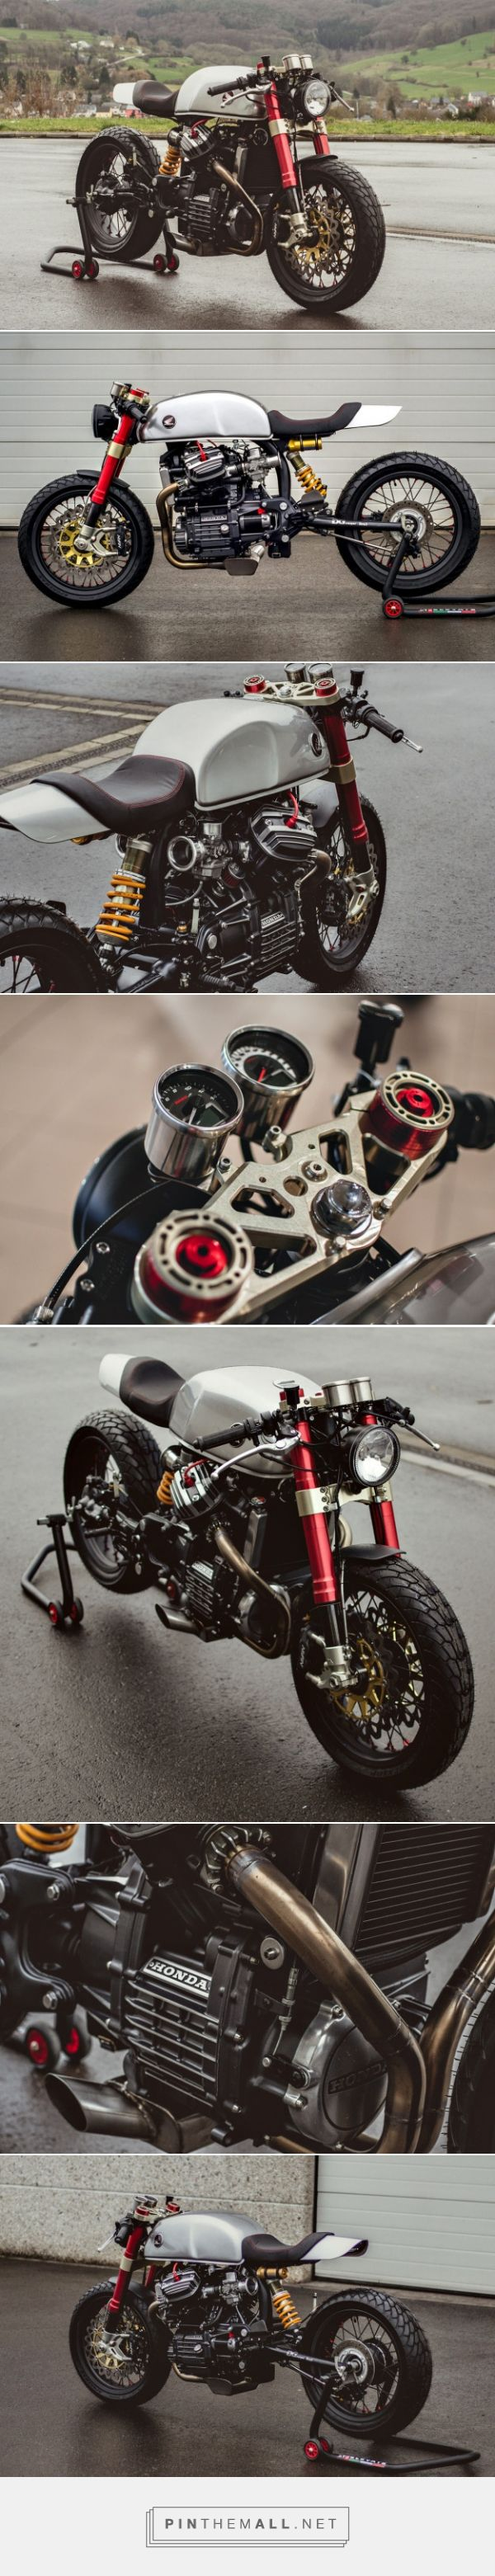 Ready+to+race:+Sacha+Lakic's+CX500+cafe+|+Bike+EXIF+-+created+via+https://pinthemall.net